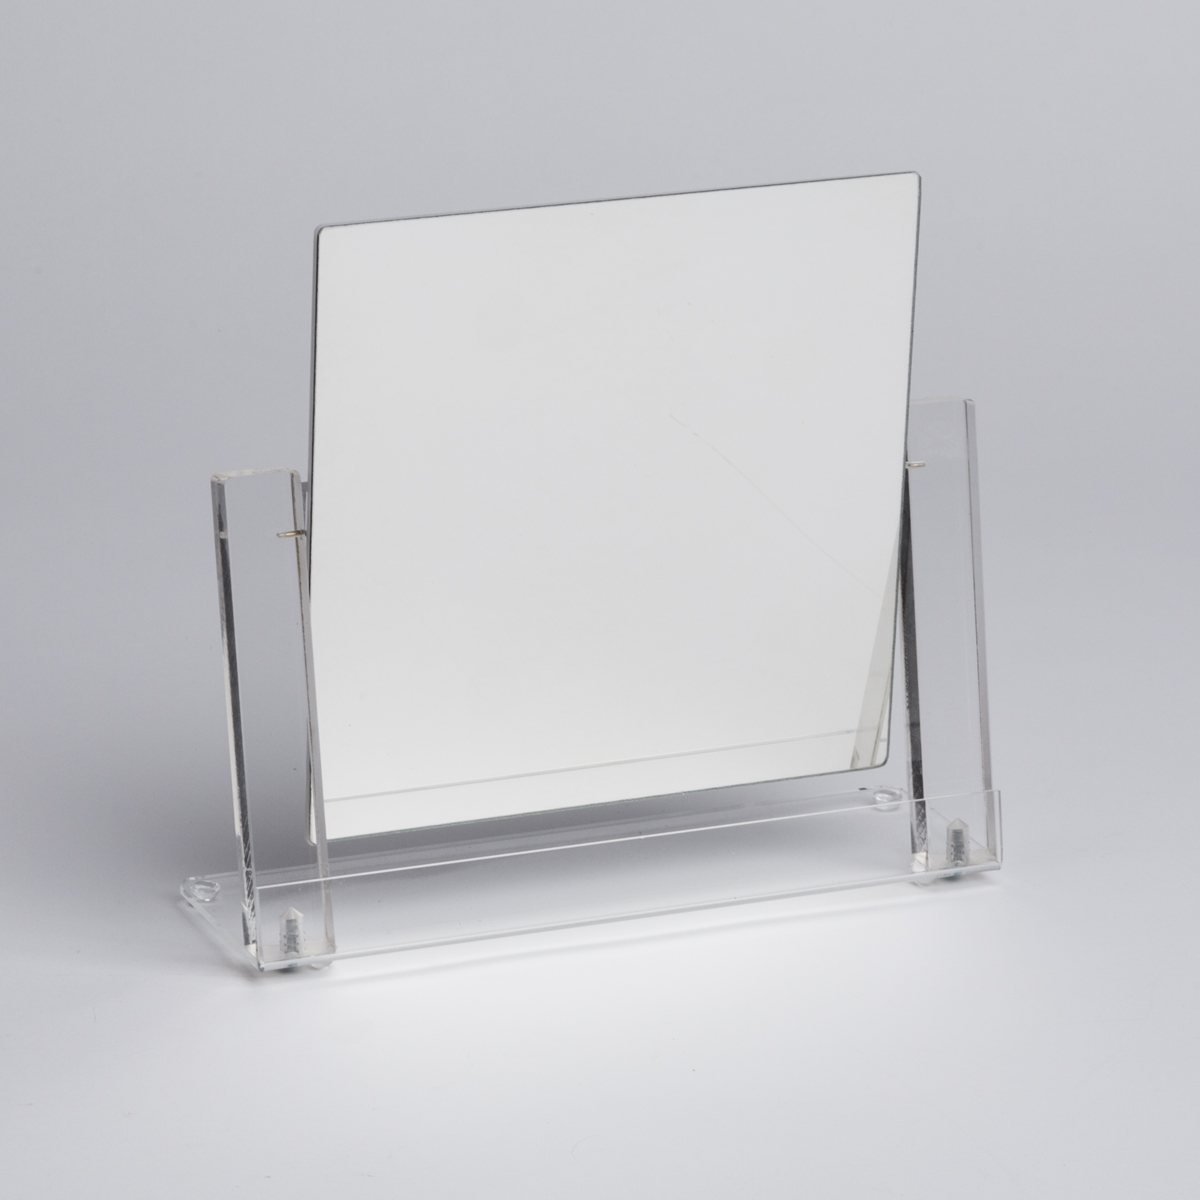 Countertop Mirror : Jewelry Mirror - Countertop, Clear Frame A&B Store Fixtures